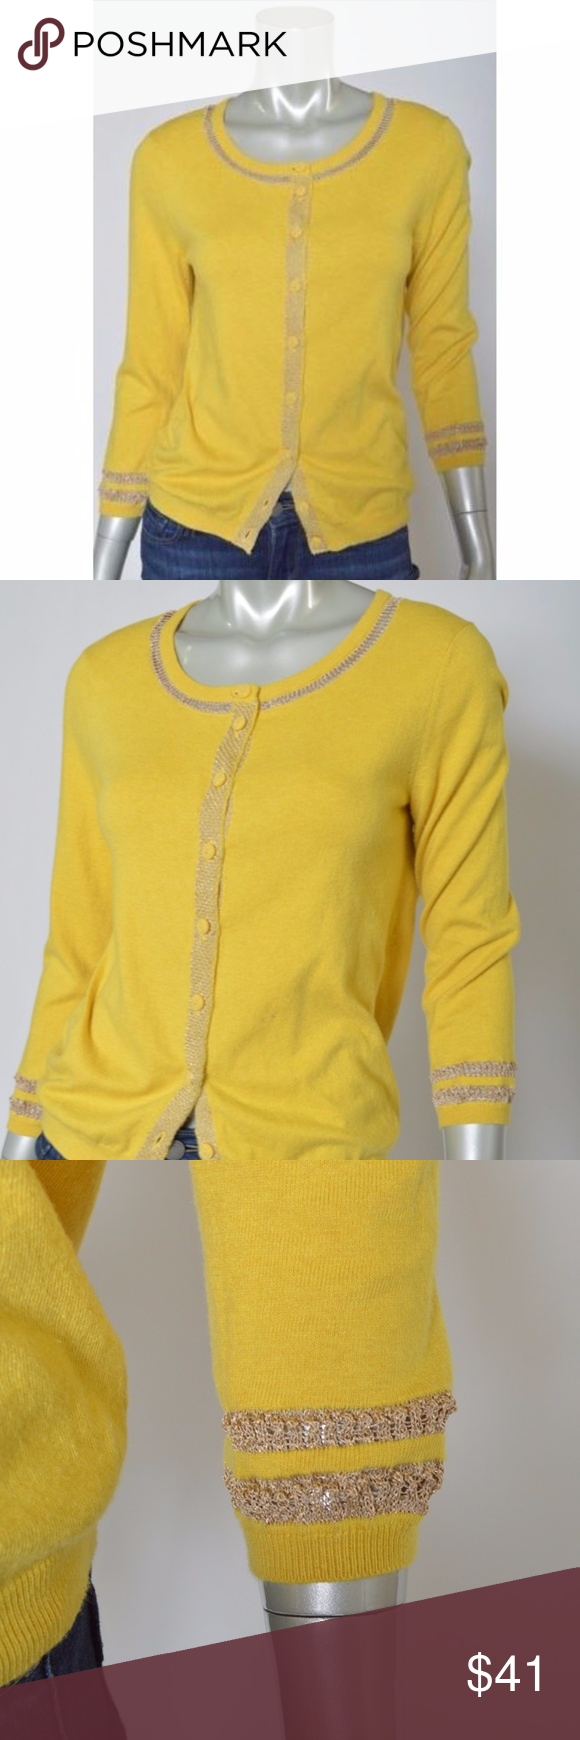 Sparrow Anthropologie Cardigan Sweater Gold Trim L | Anthropologie ...